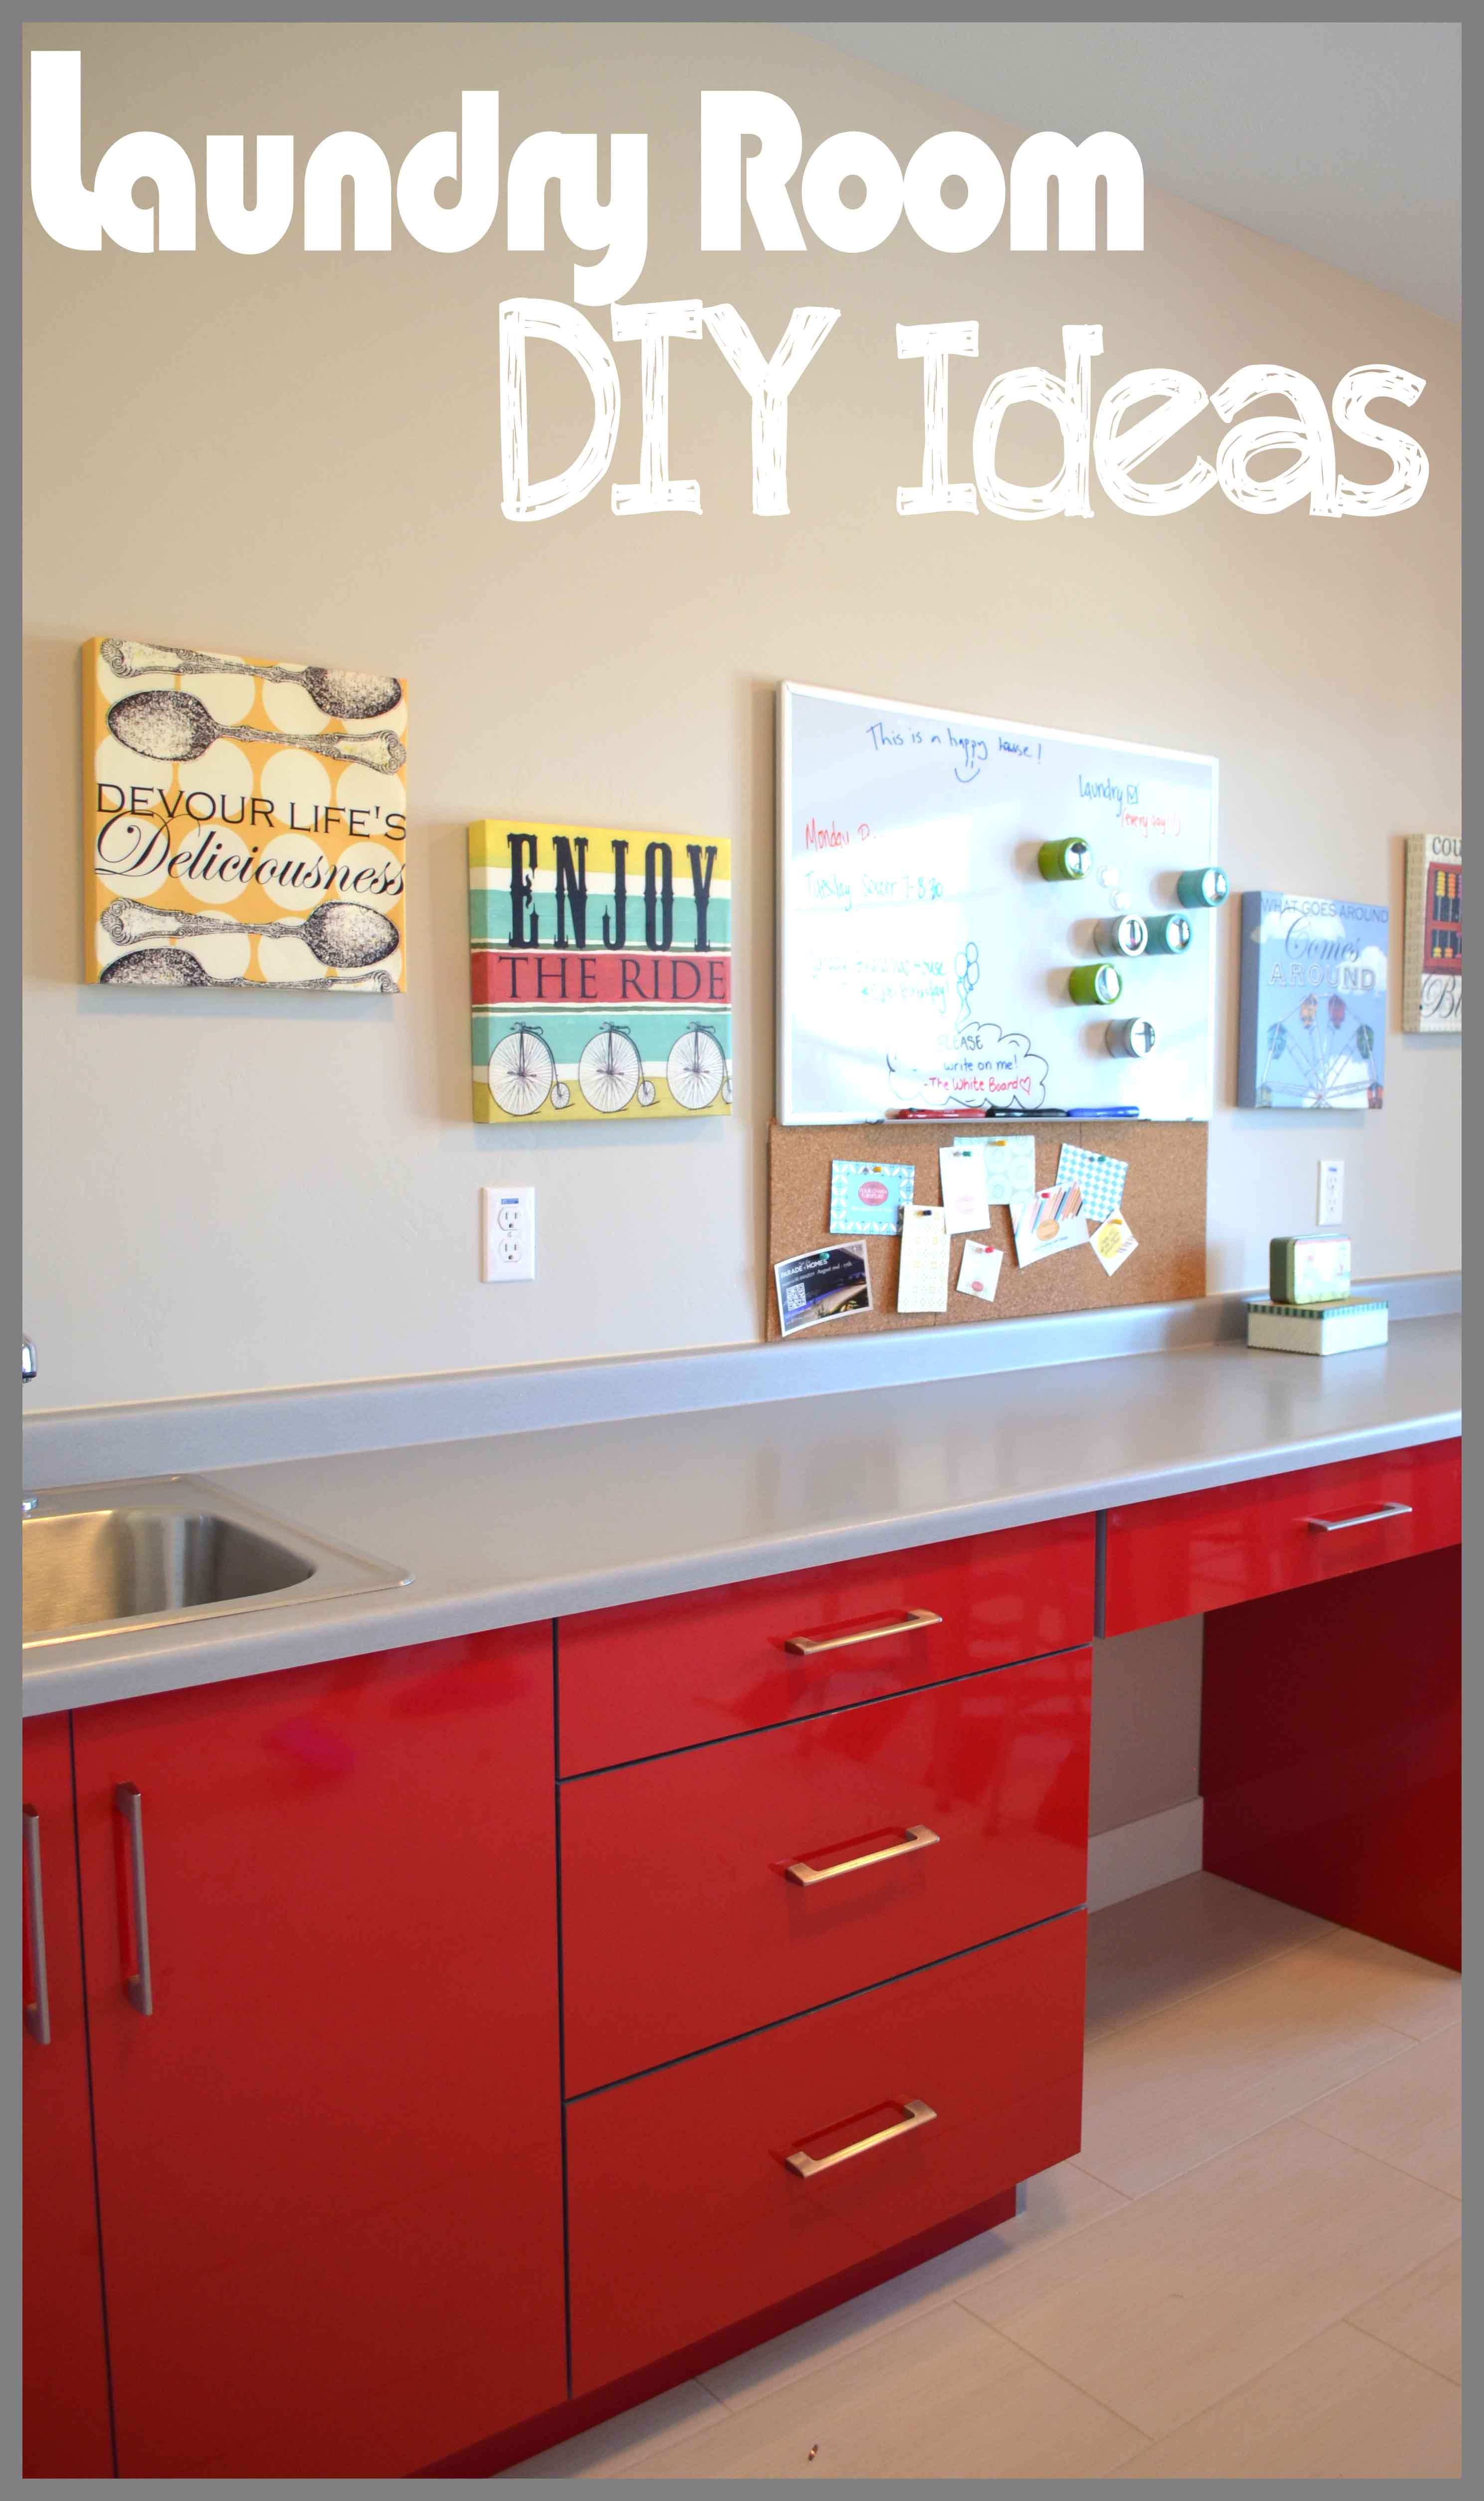 Laundry room diy projects - Room ideas diy ...